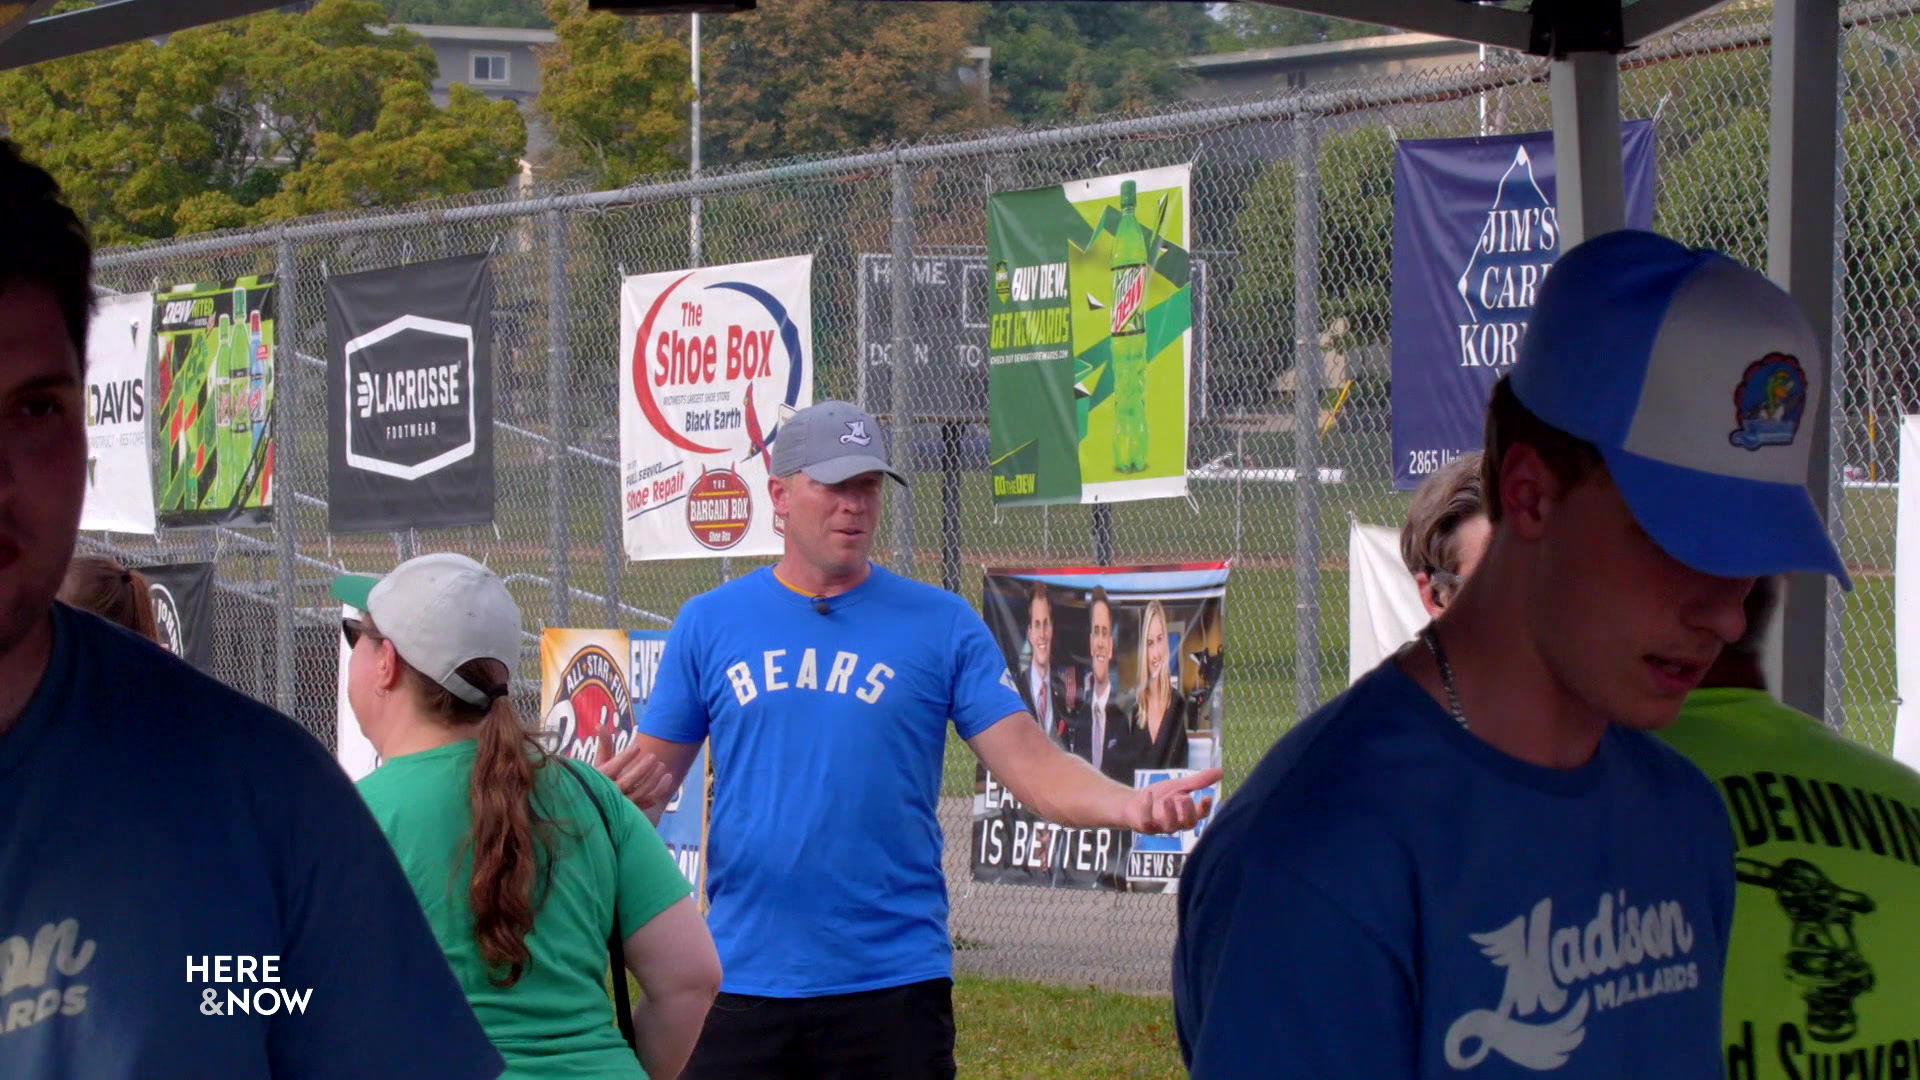 Vern Stenman stands near the entrance to the Duck Pond in front of a fence with advertisements.